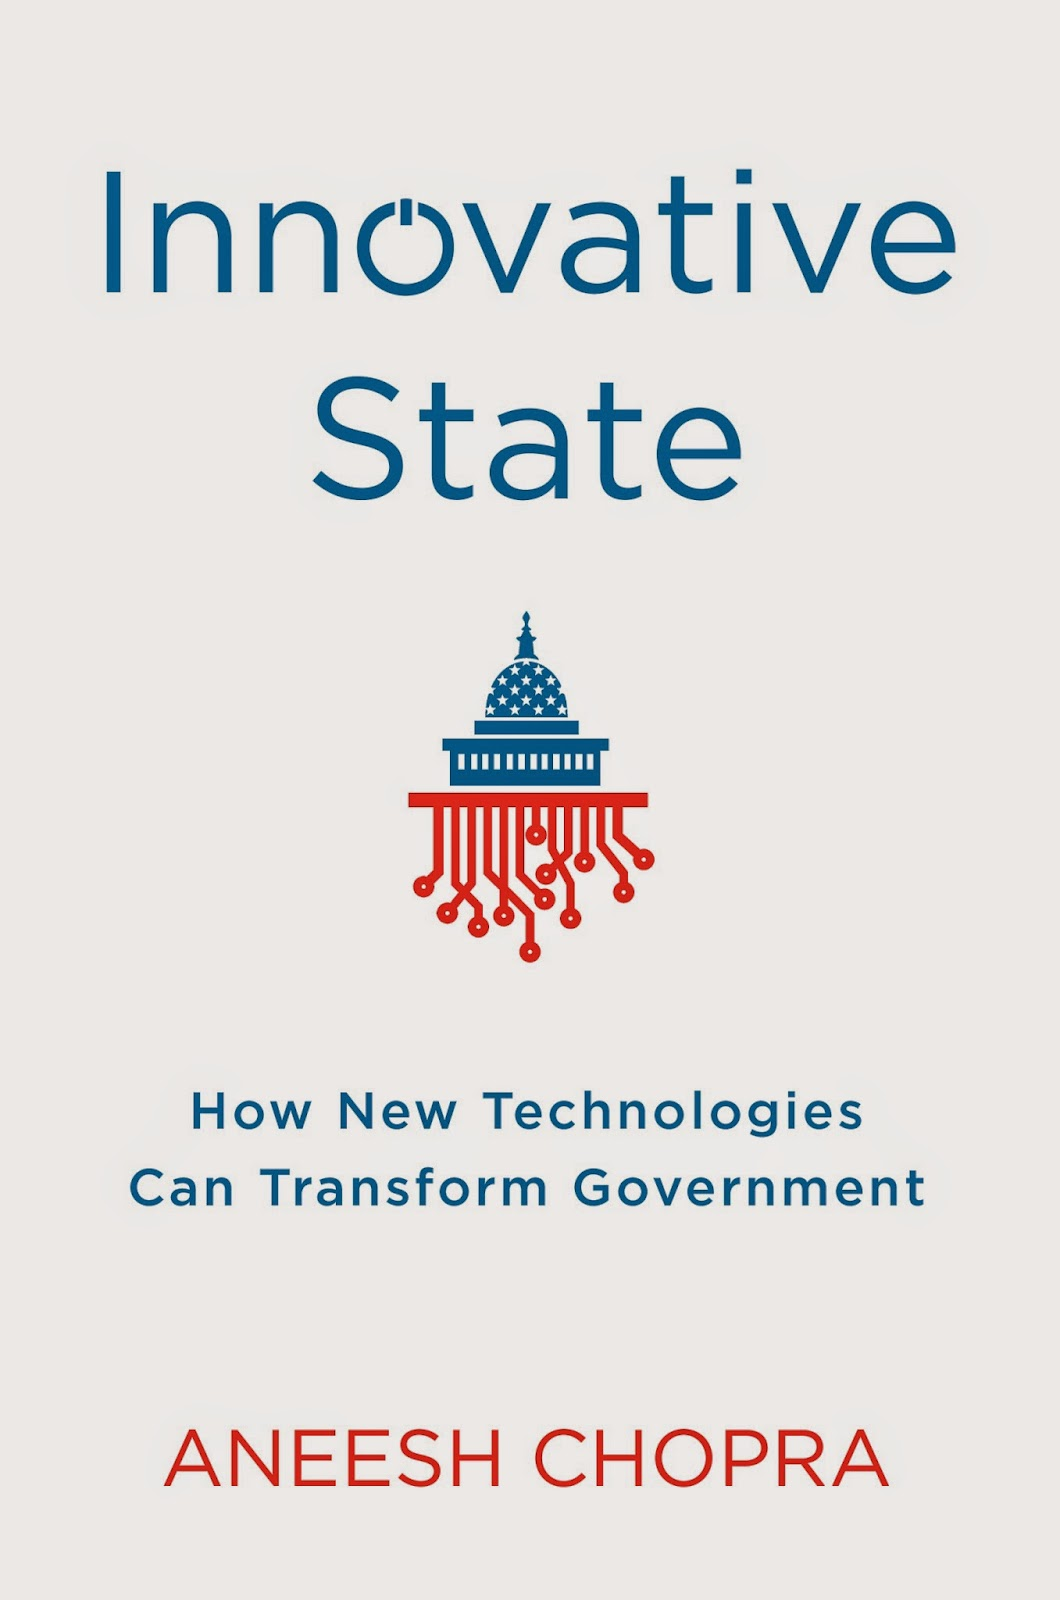 Innovative State by Aneesh Chopra.  Source: http://www.groveatlantic.com/bigcovers/9780802121332.jpg